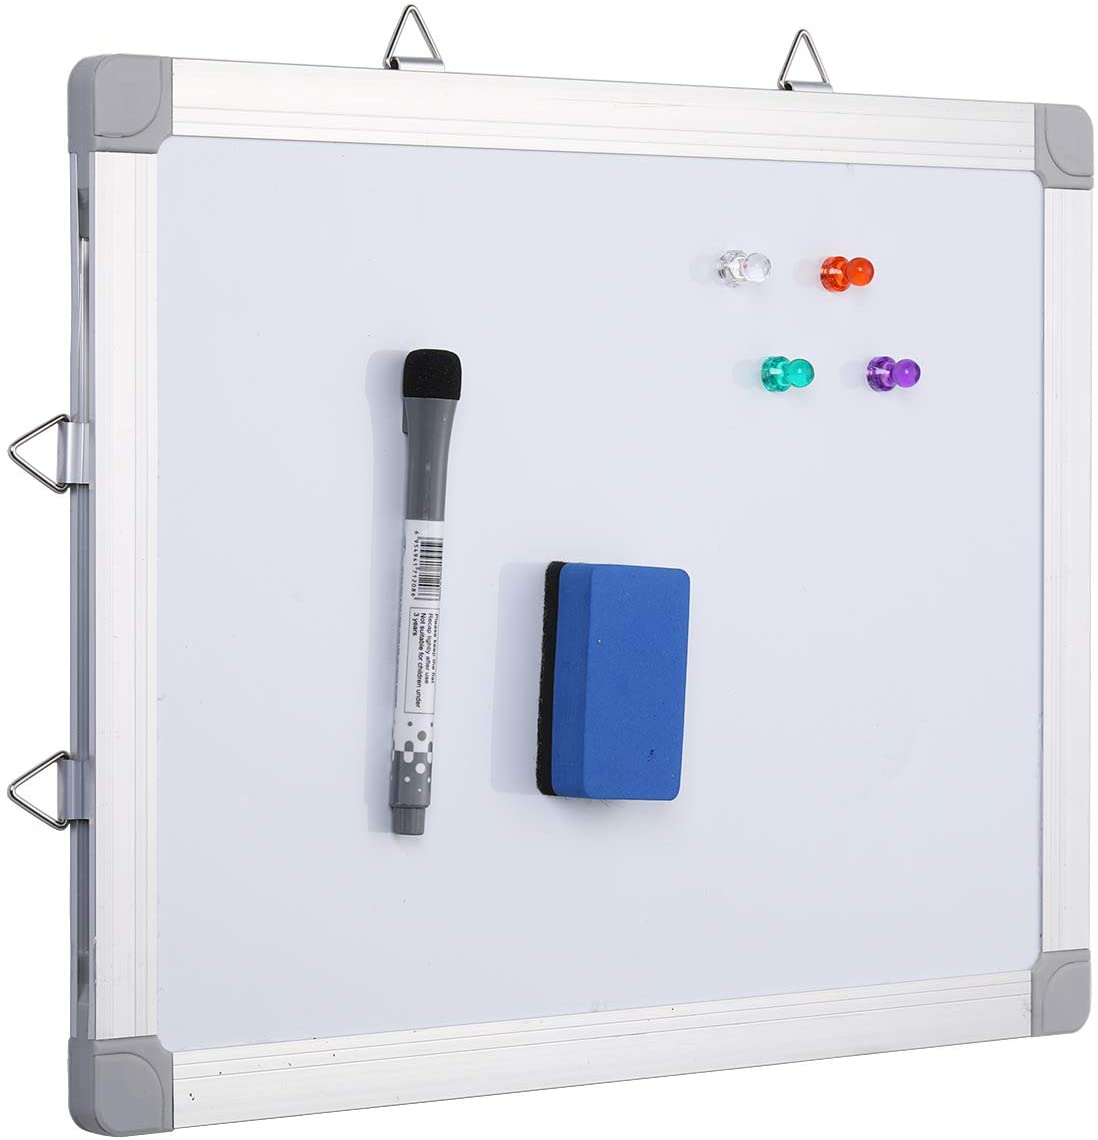 Small Dry Erase Board, 16 x 12 inch, Double-Sided, Hanging Small Magnetic Whiteboard for Wall Reminder Message Board with Dry Erase Marker/Eraser for Kids, Home, Office, School by Aelfox